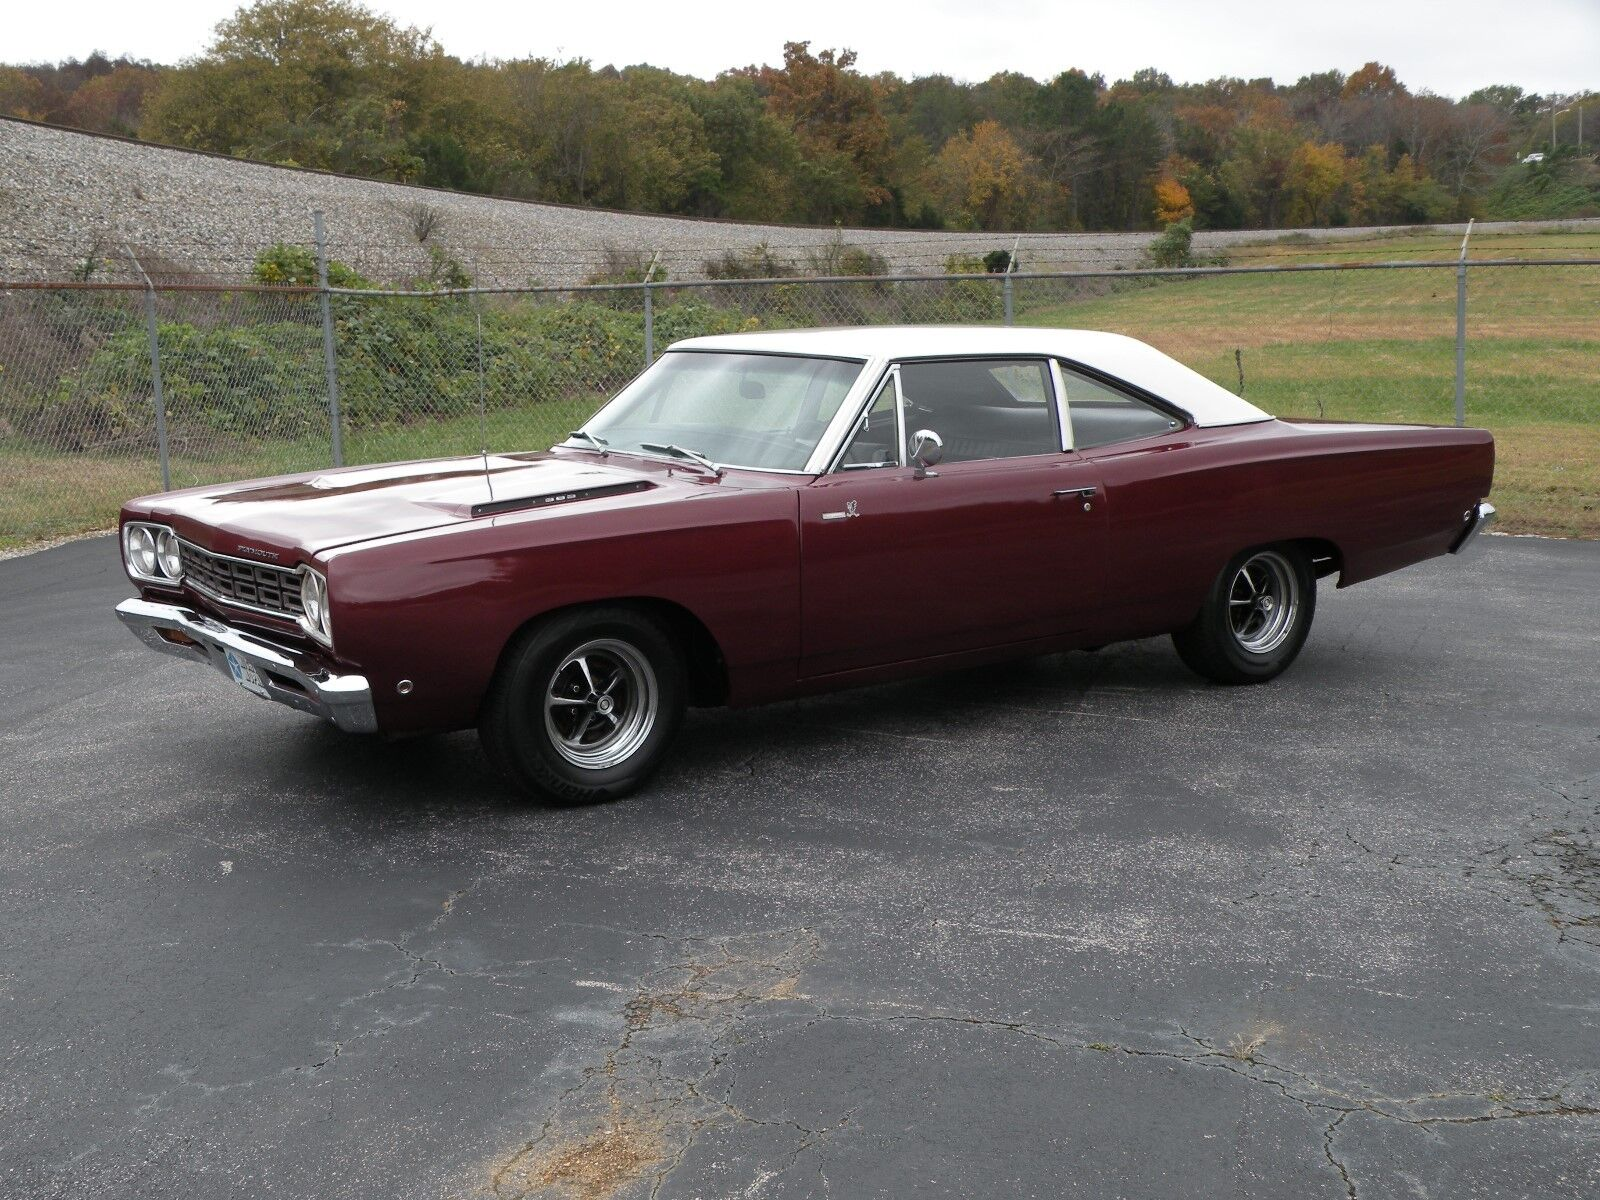 1968 Plymouth Road Runner  1968 Plymouth Road Runner, True RM21 Car, Rare Factory Color, 440, Automatic, PS